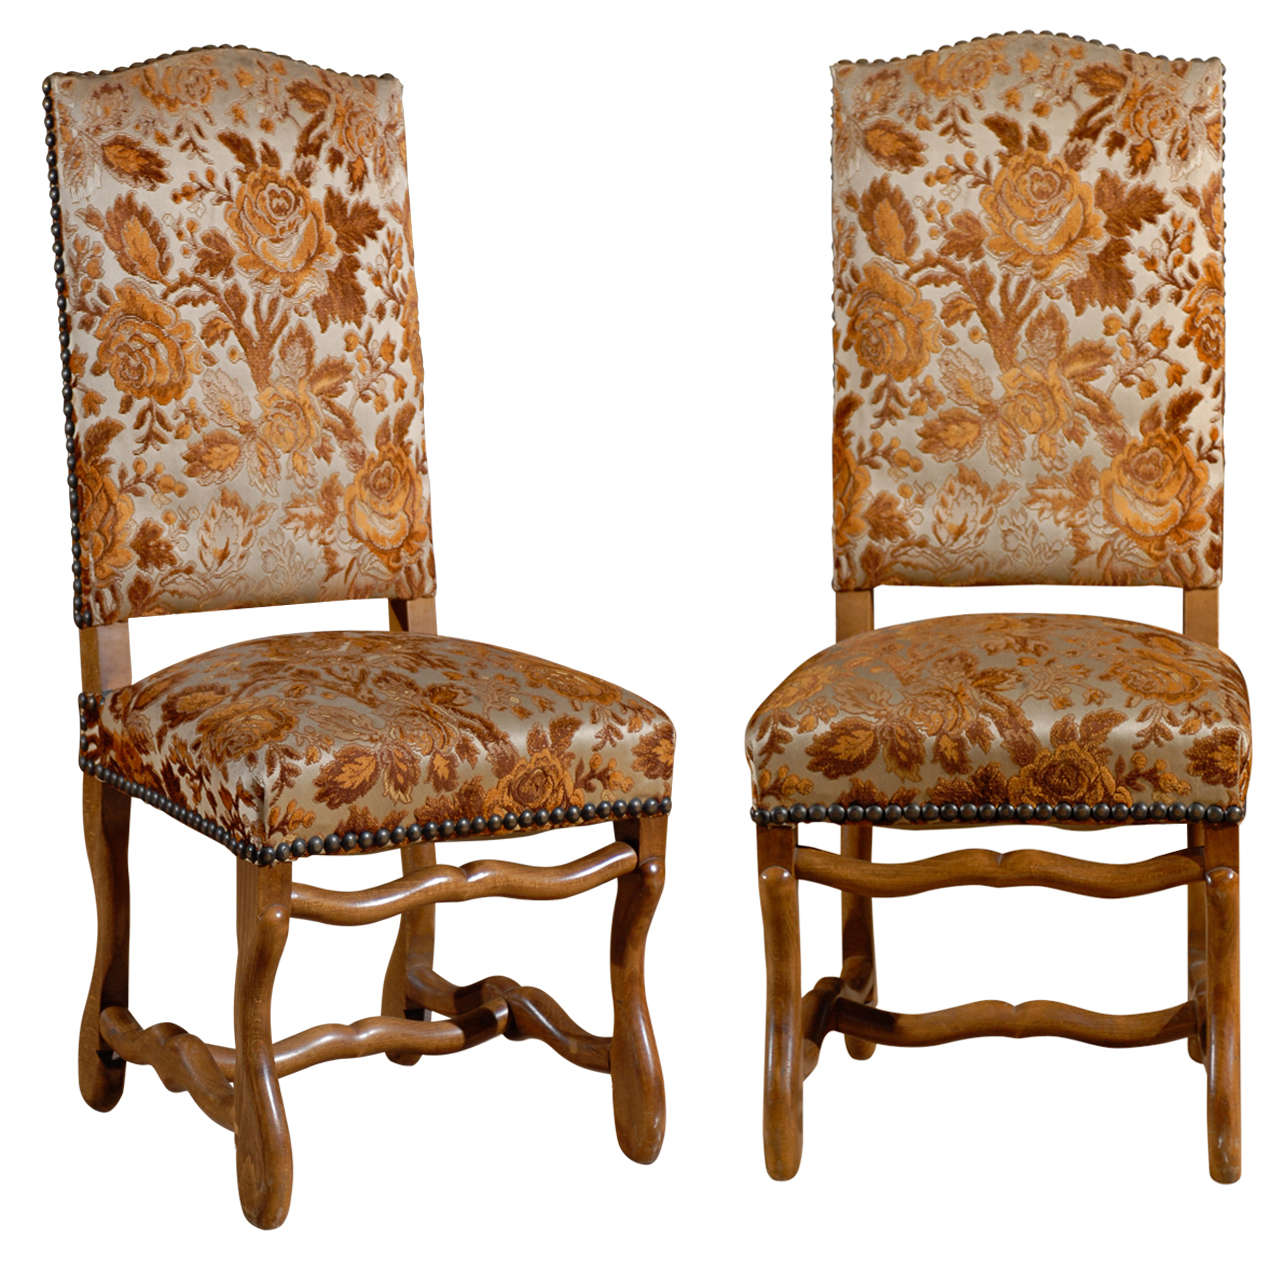 French Country Dining Room Furniture: Set Of 8 Country French Dining Chairs At 1stdibs